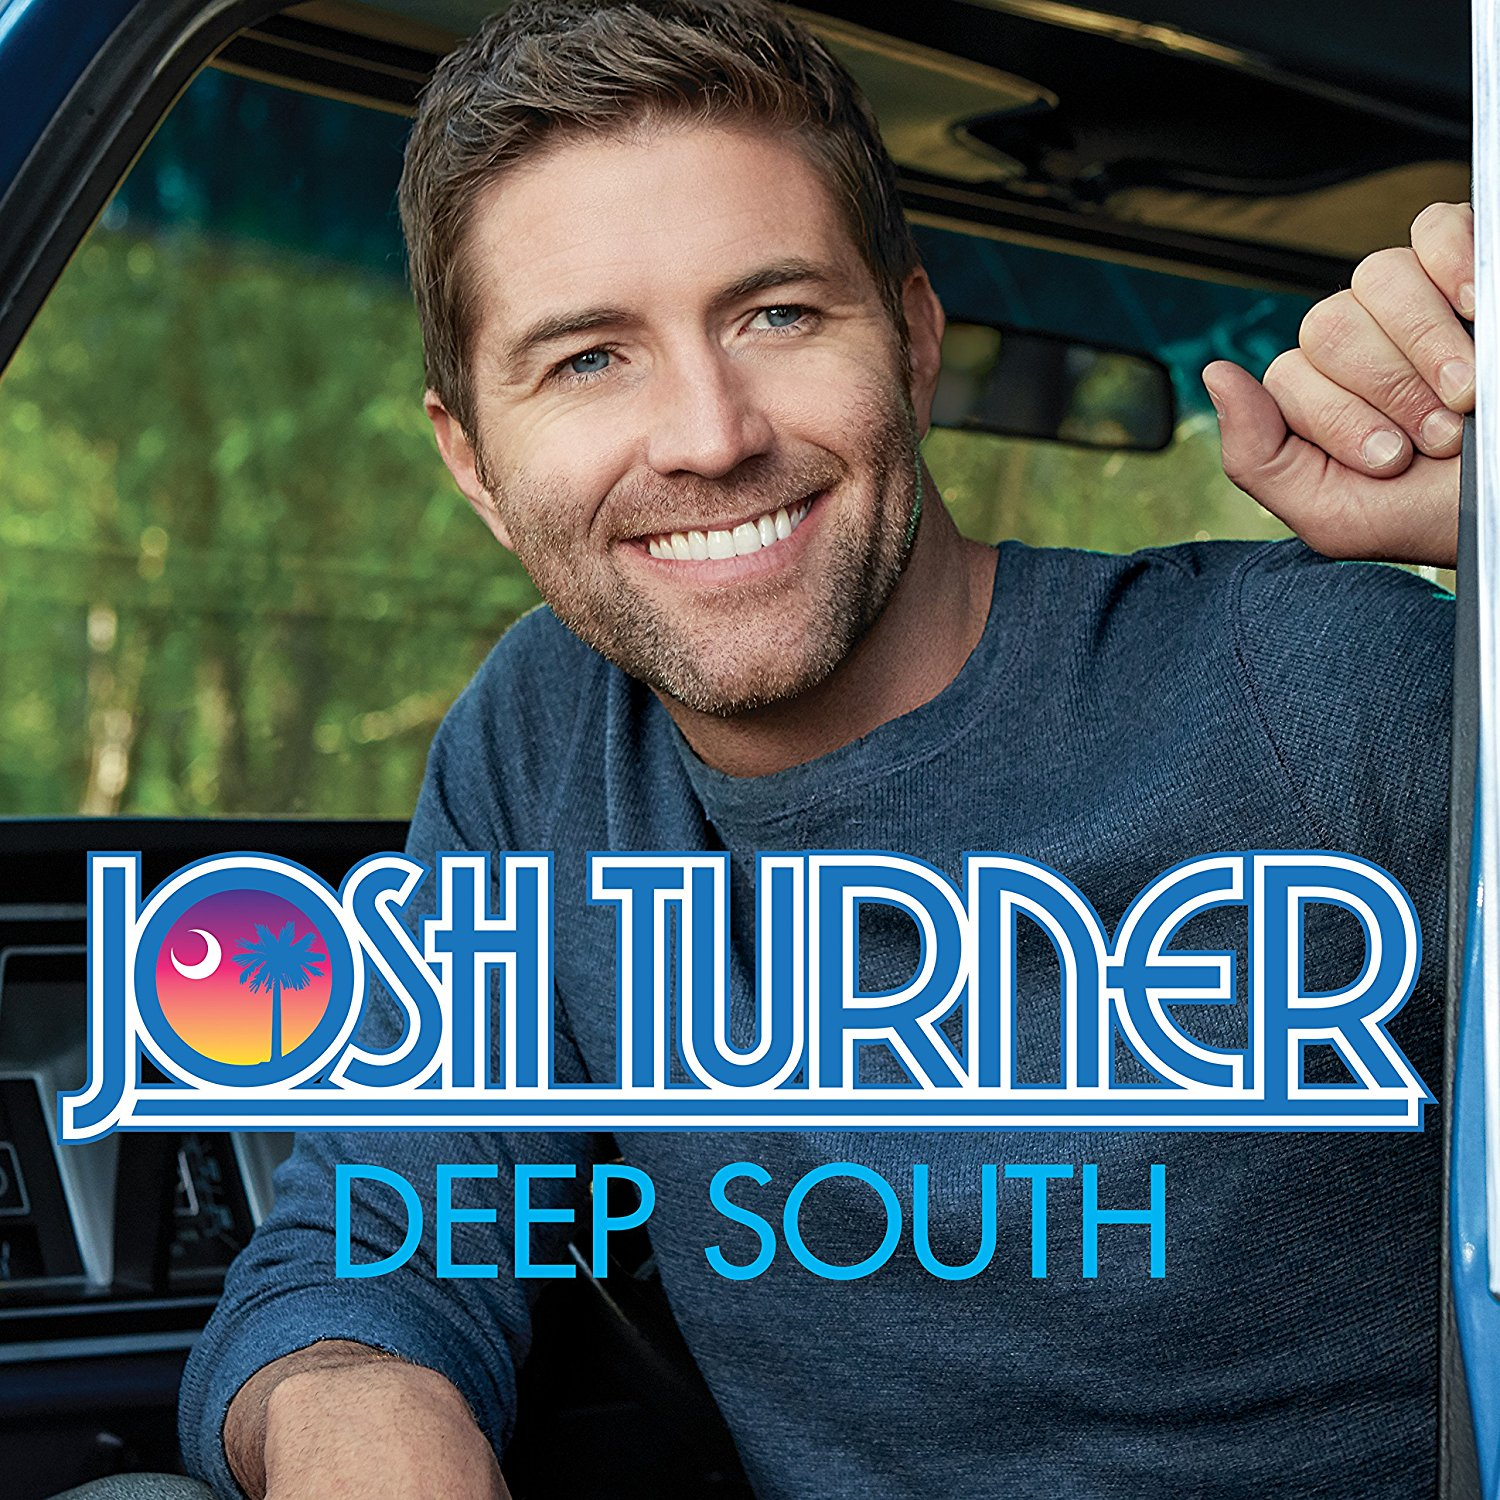 Josh Turner - Deep South.jpg